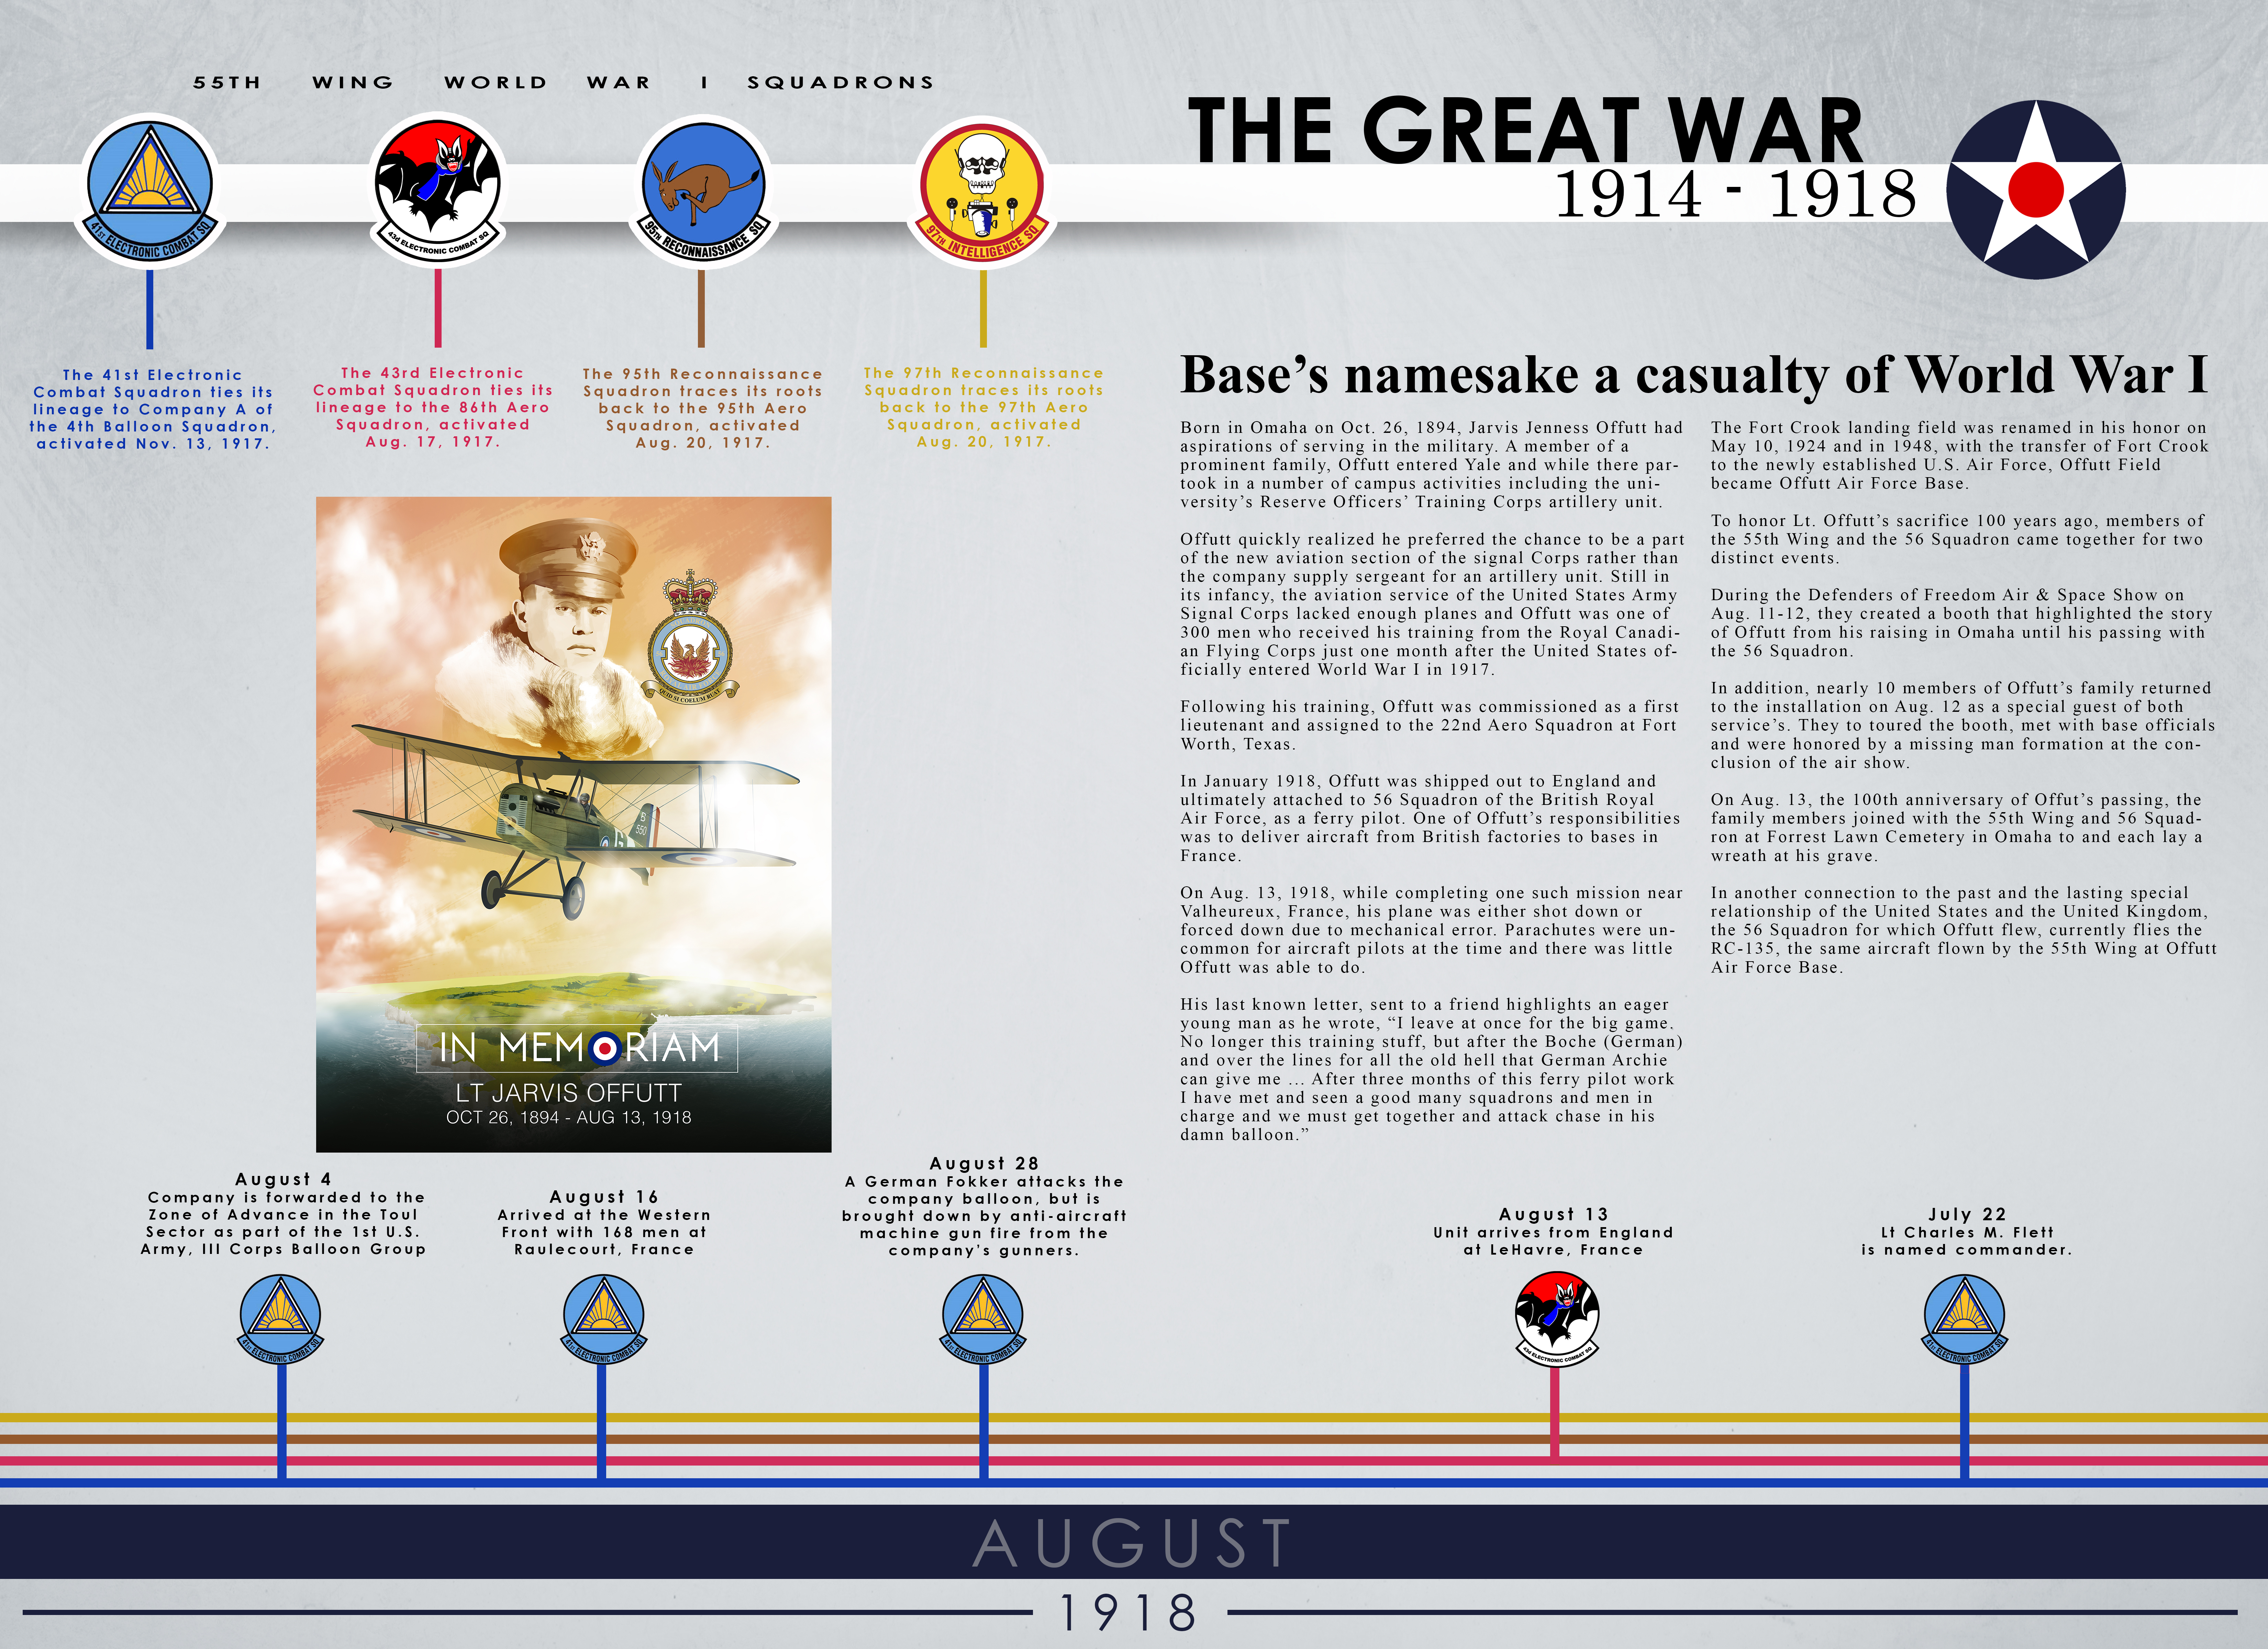 The Great War August Timeline image